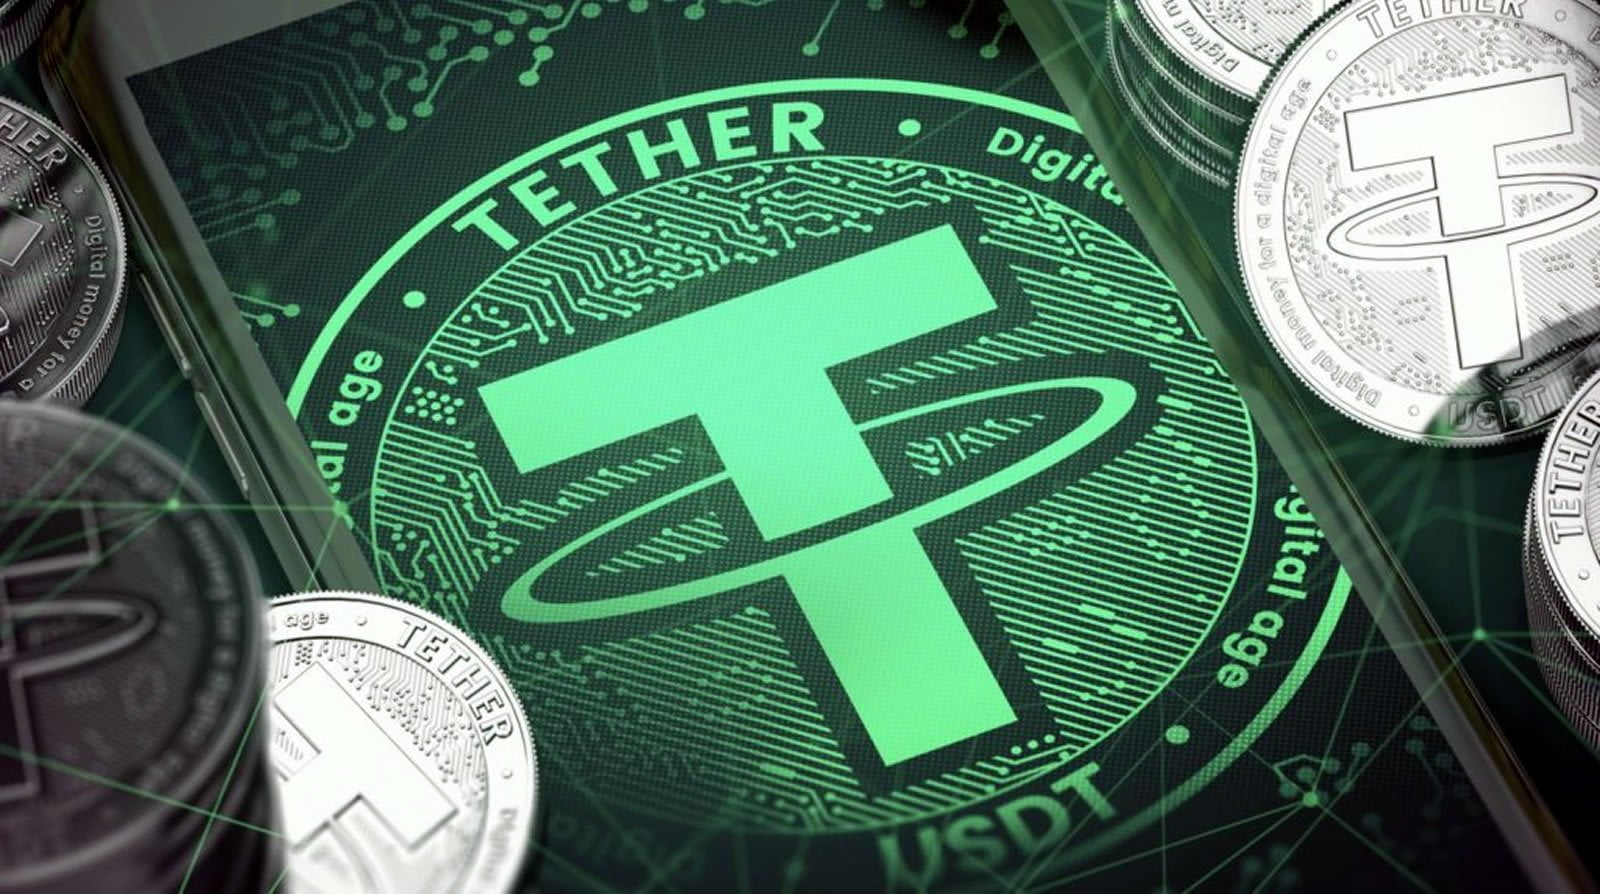 Tether's (USDT) Market Cap Exceeds $25B, With $5B Issued in One Month